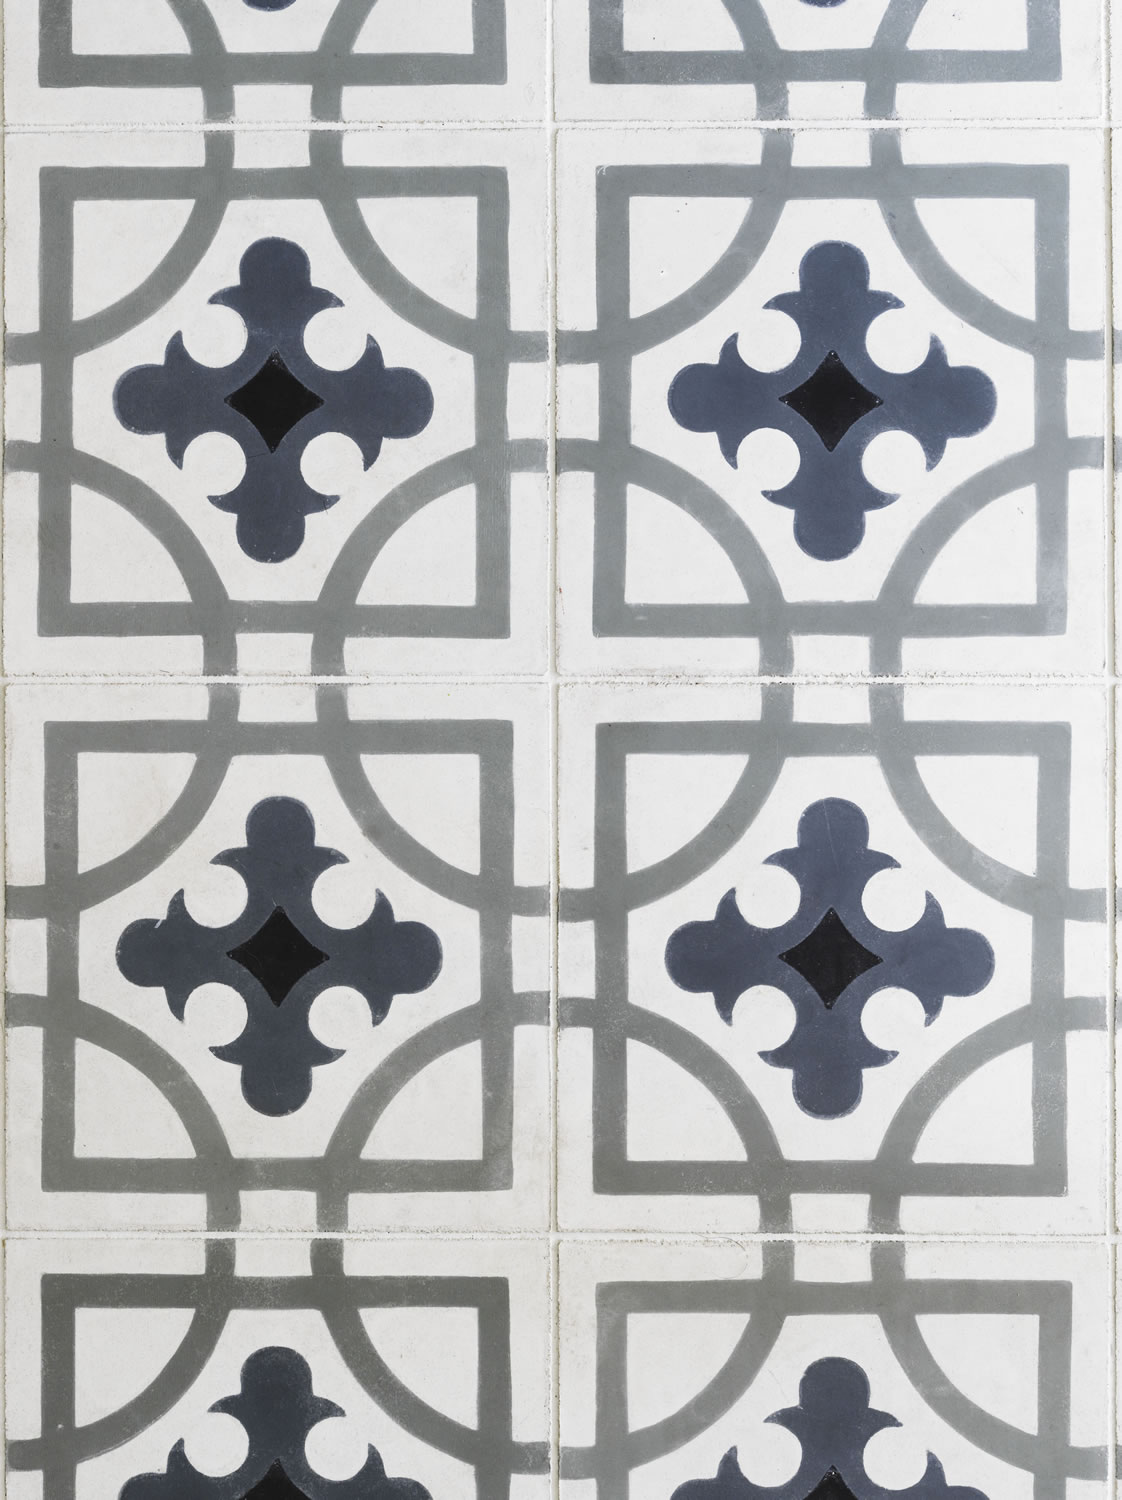 Laundry_tiledetail_007.jpg